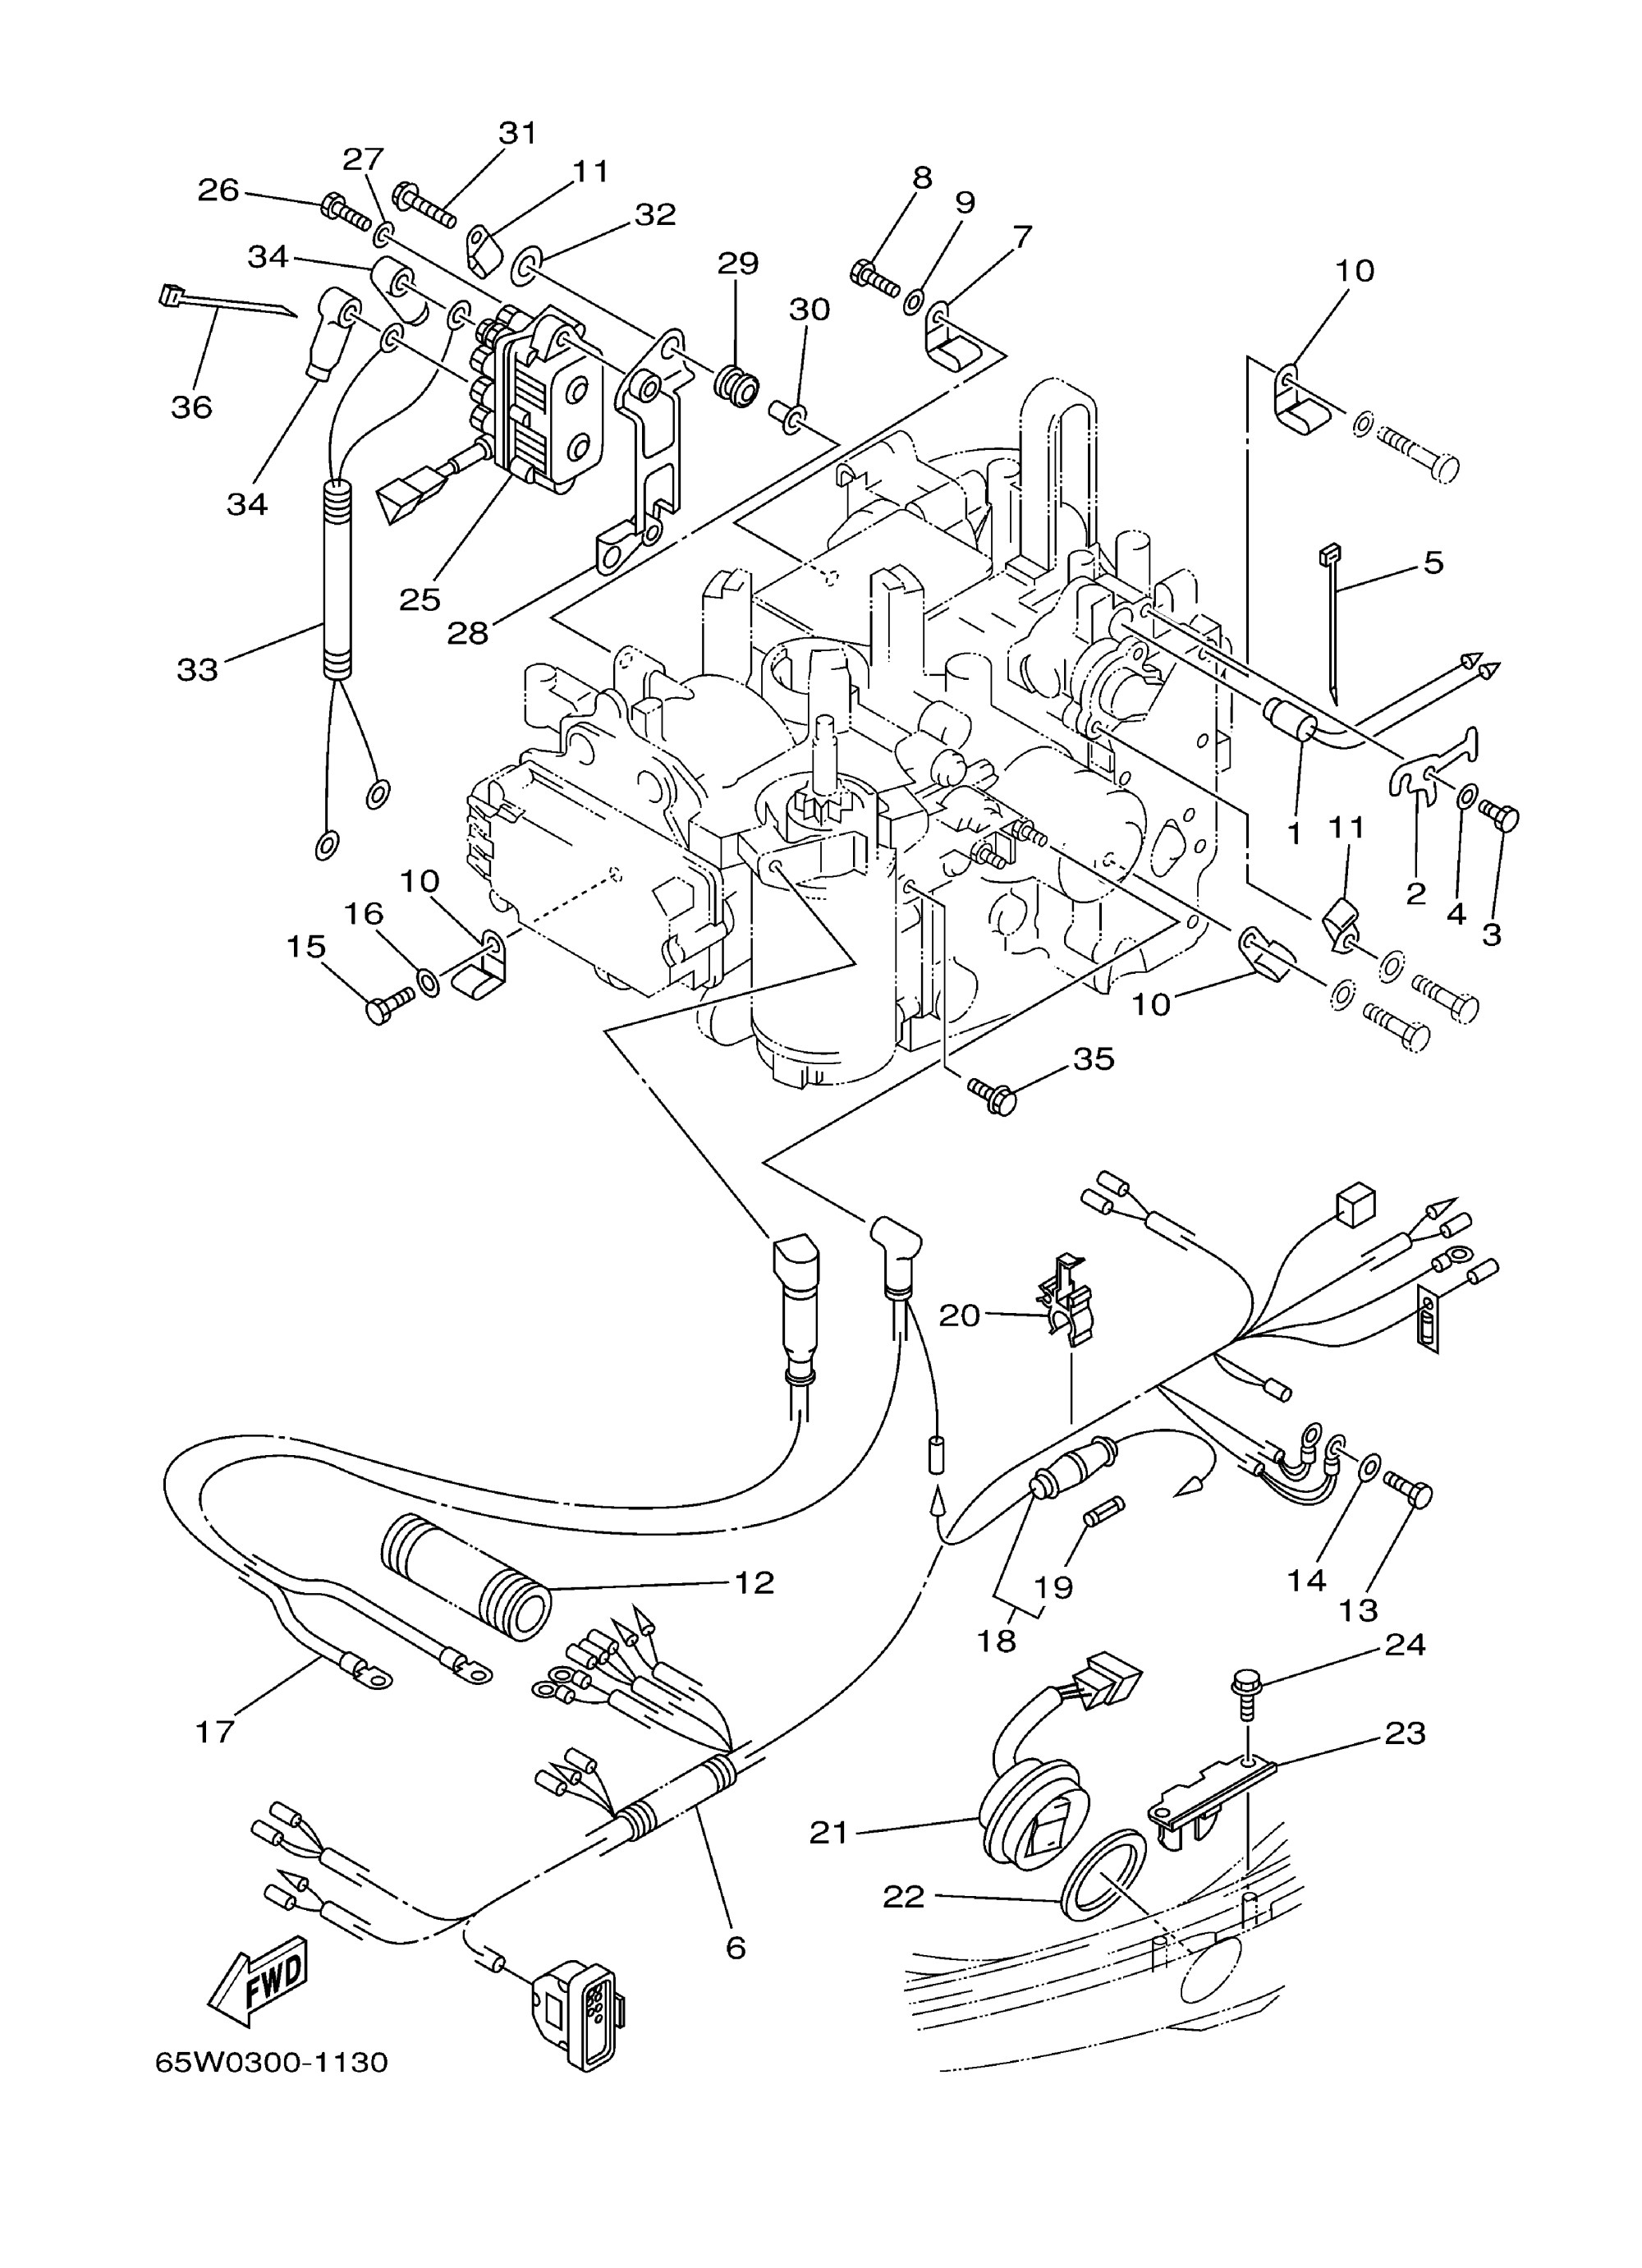 hight resolution of  60 40 hp mercury outboard wiring diagram wirings diagram hp mercury outboard wiring diagram on johnson